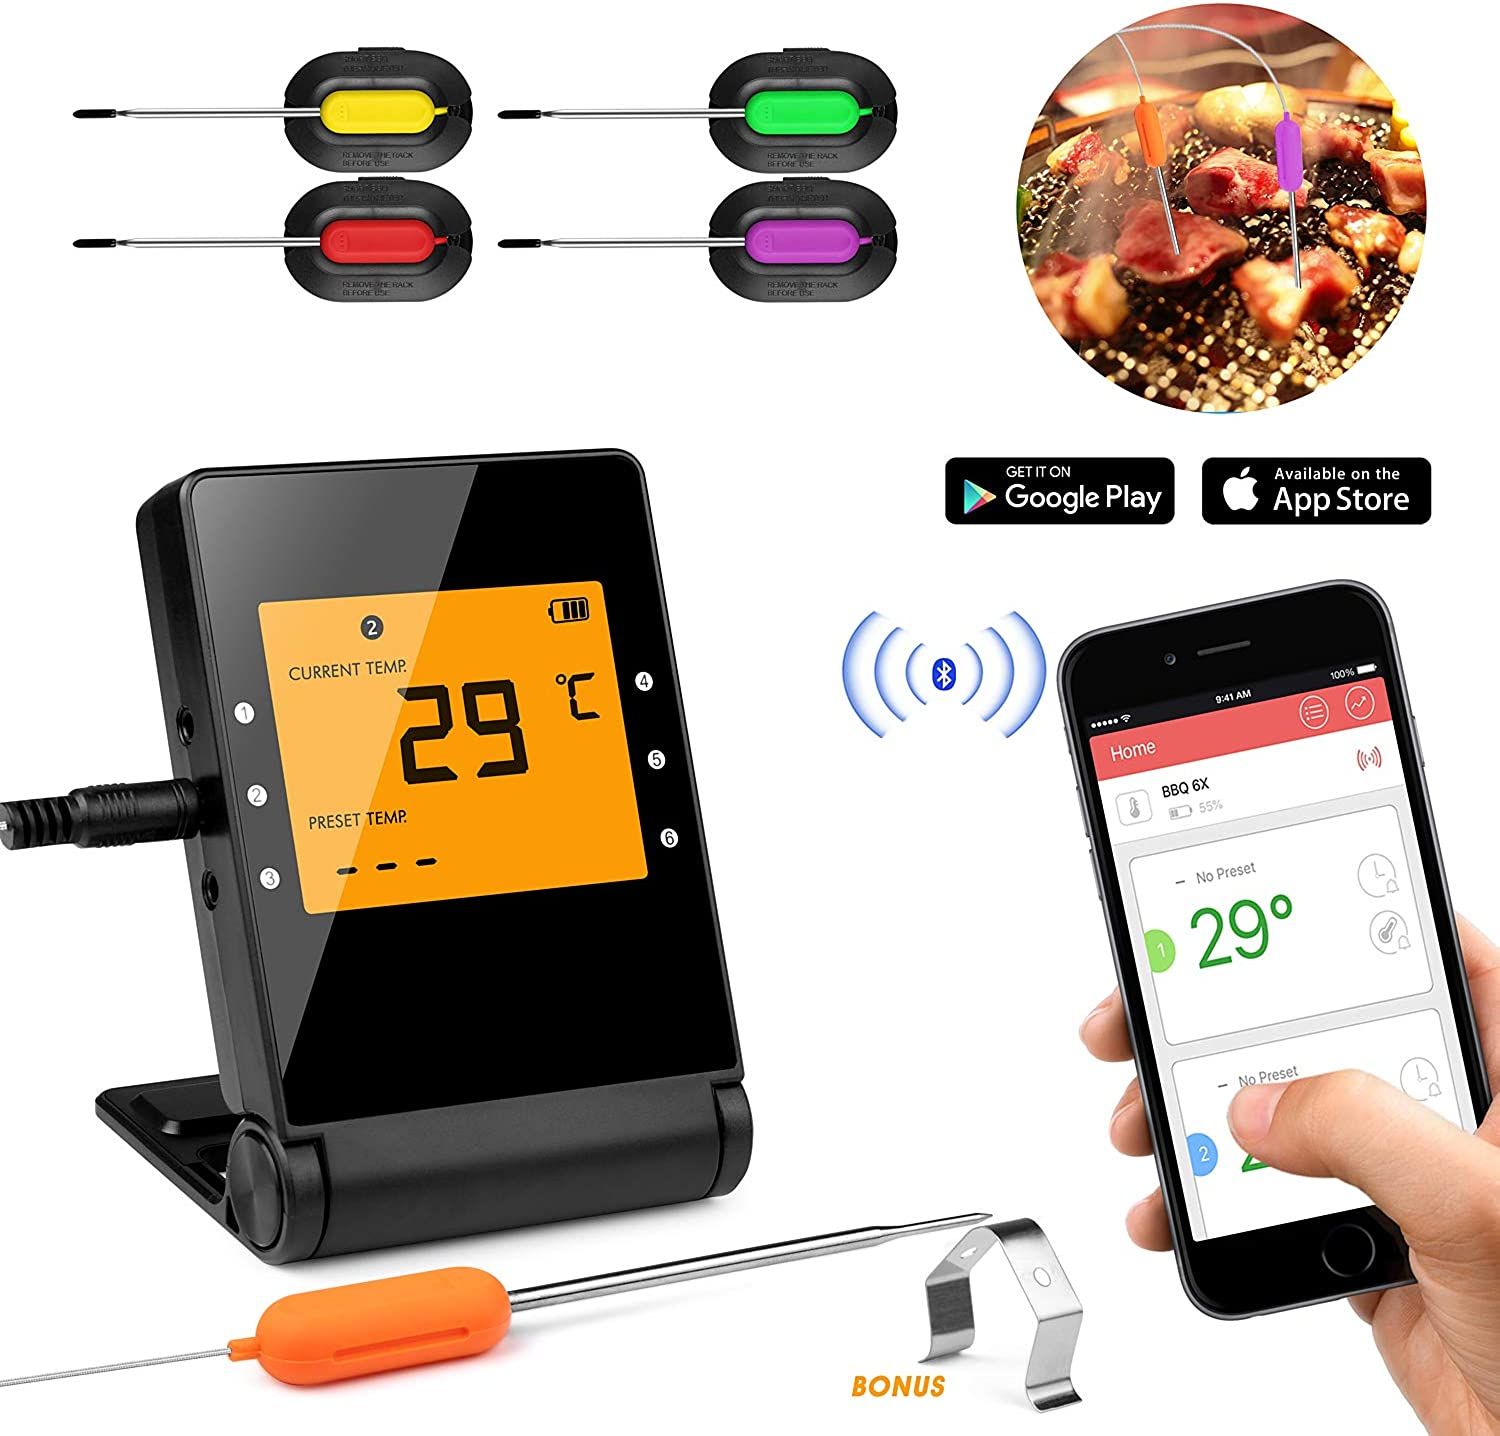 Shinmax BBQ Meat Thermometer for Grilling,APP Controlled Smart Cooking blueetooth Thermometer for Outdoors Smoker Oven BBQ Indoor Kitchen (4P)